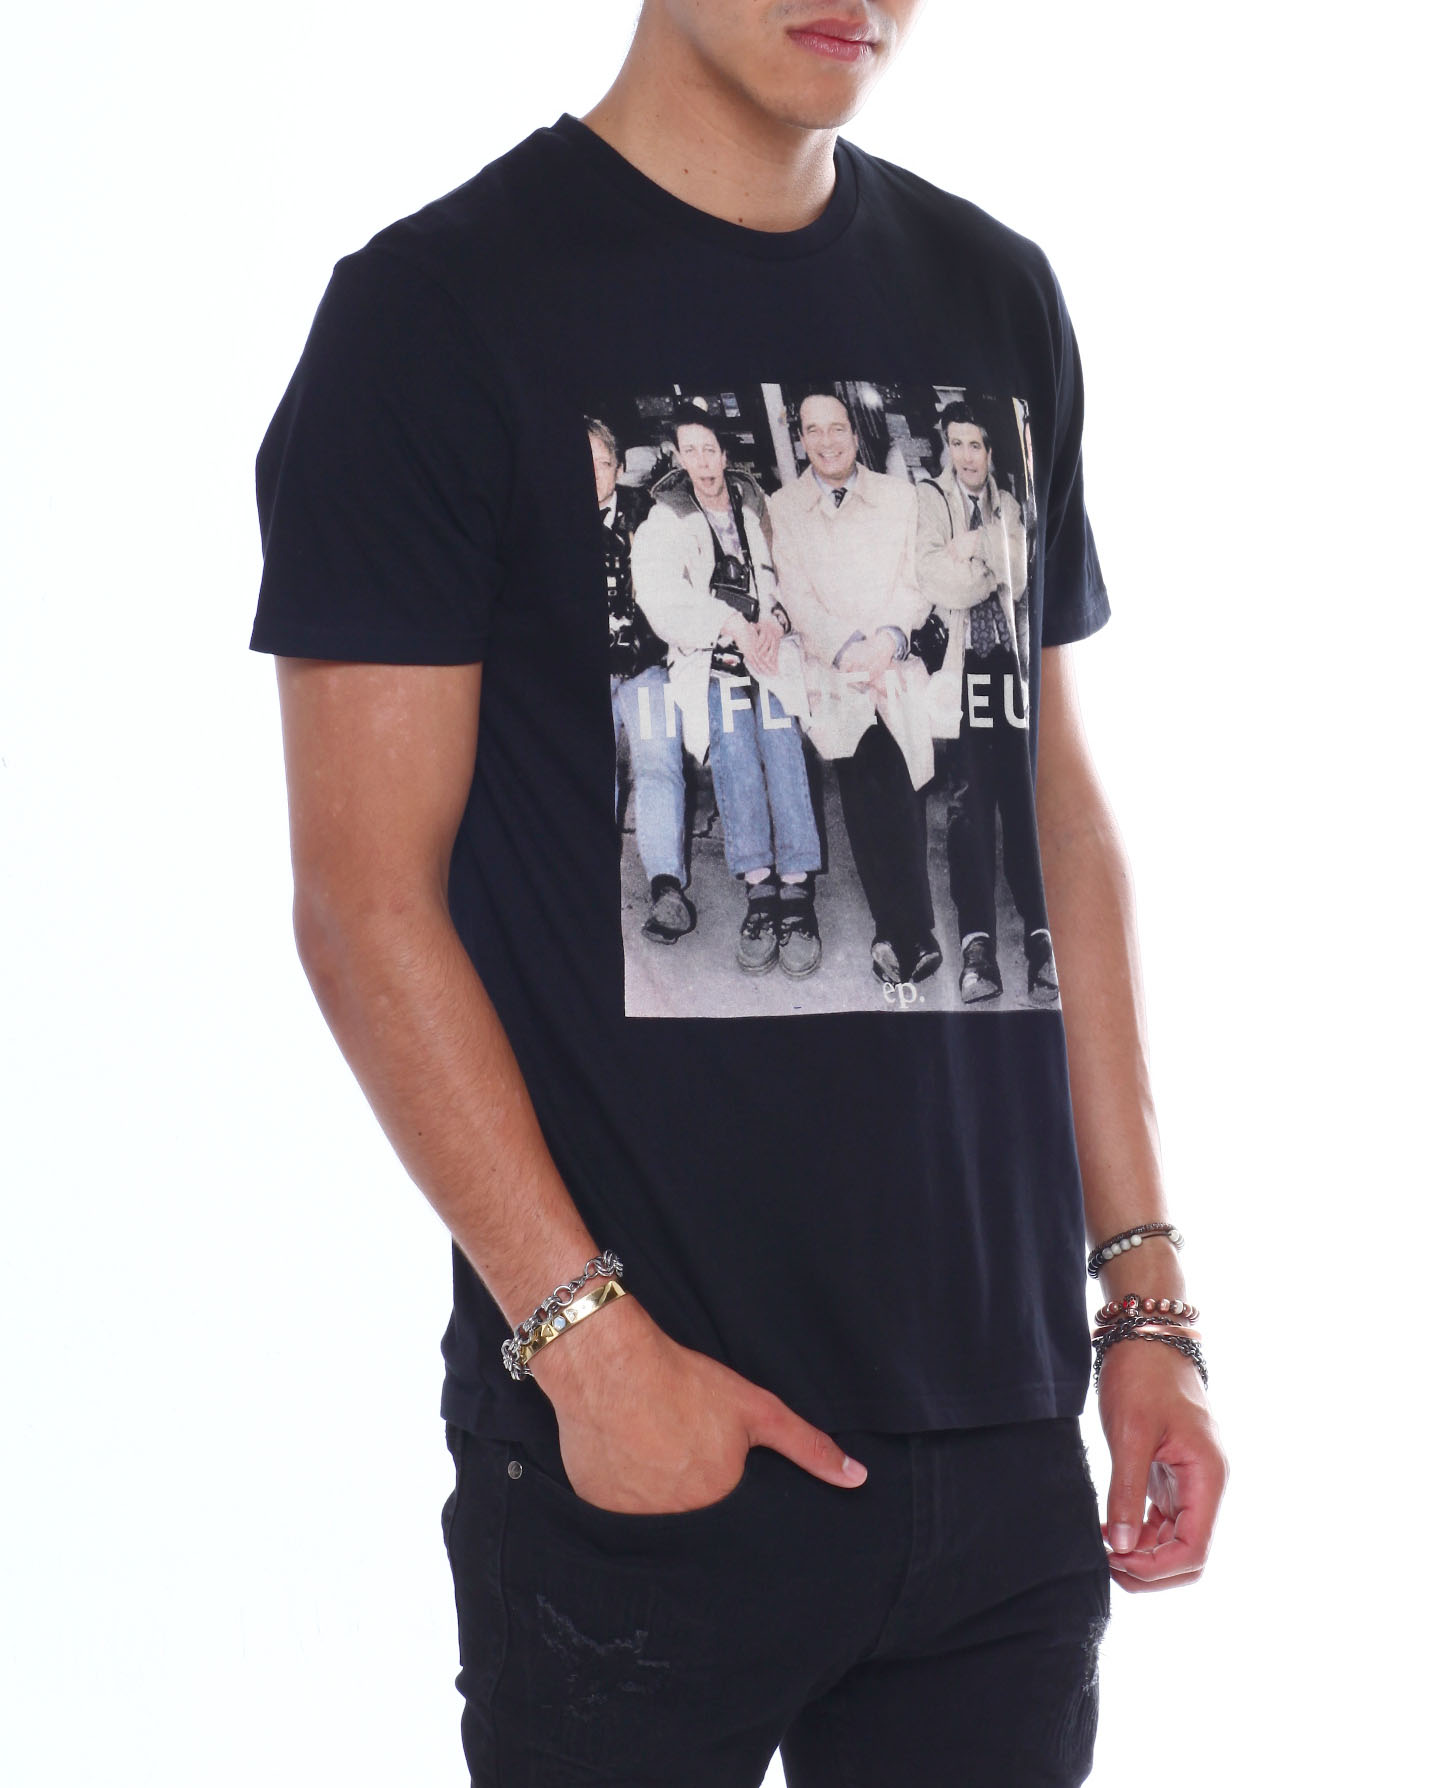 Buy MORISE INFLUENCER TEE Men's Shirts from Eleven Paris